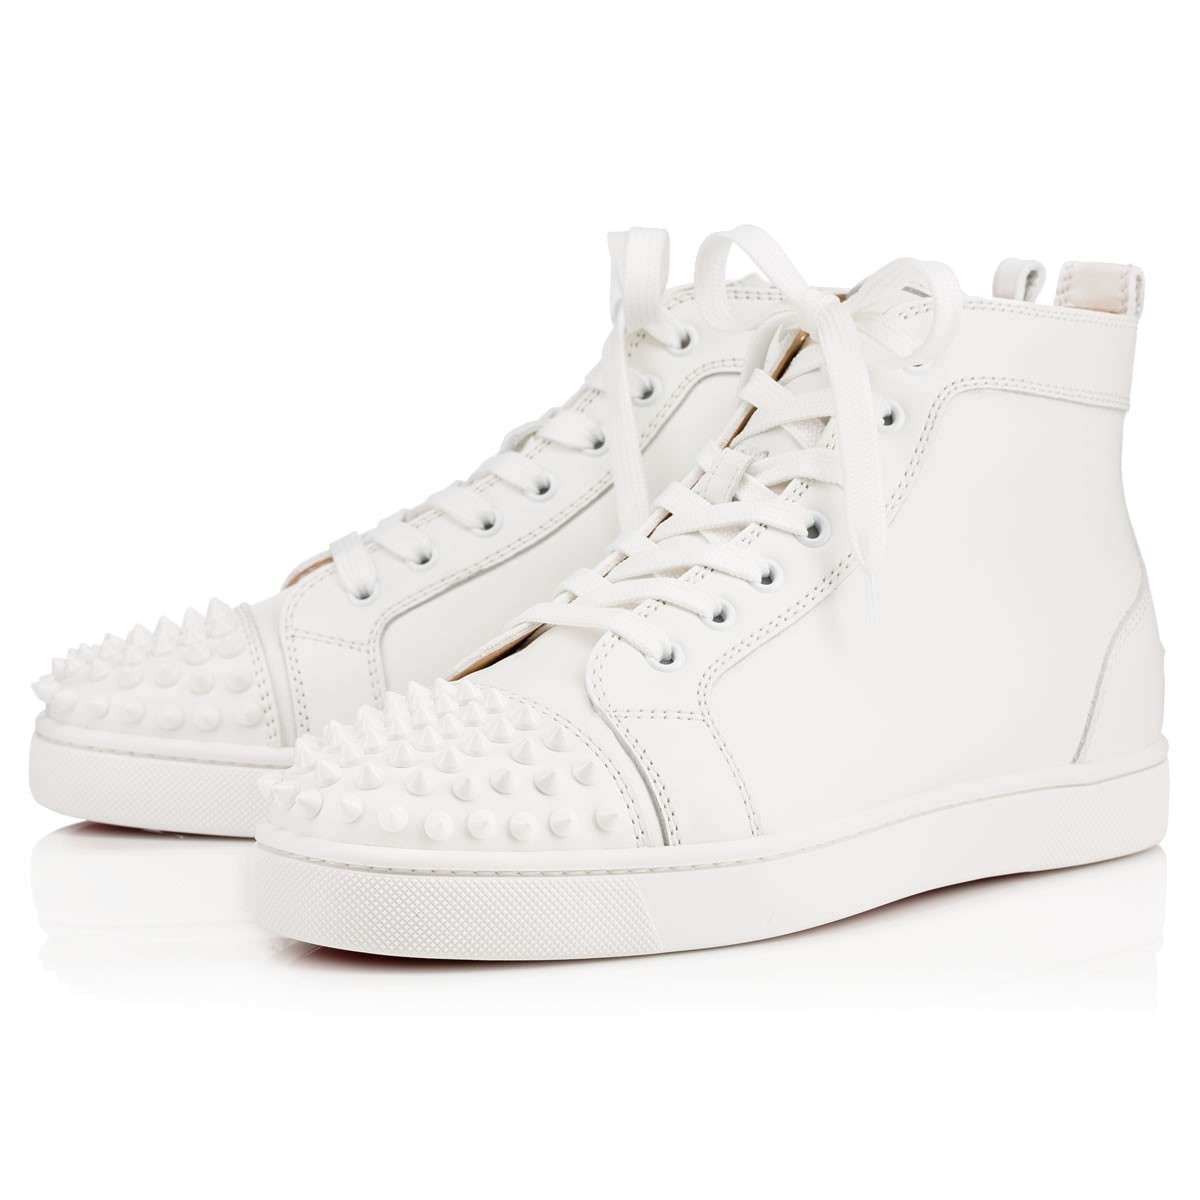 Sneakers con borchie Christian Louboutin